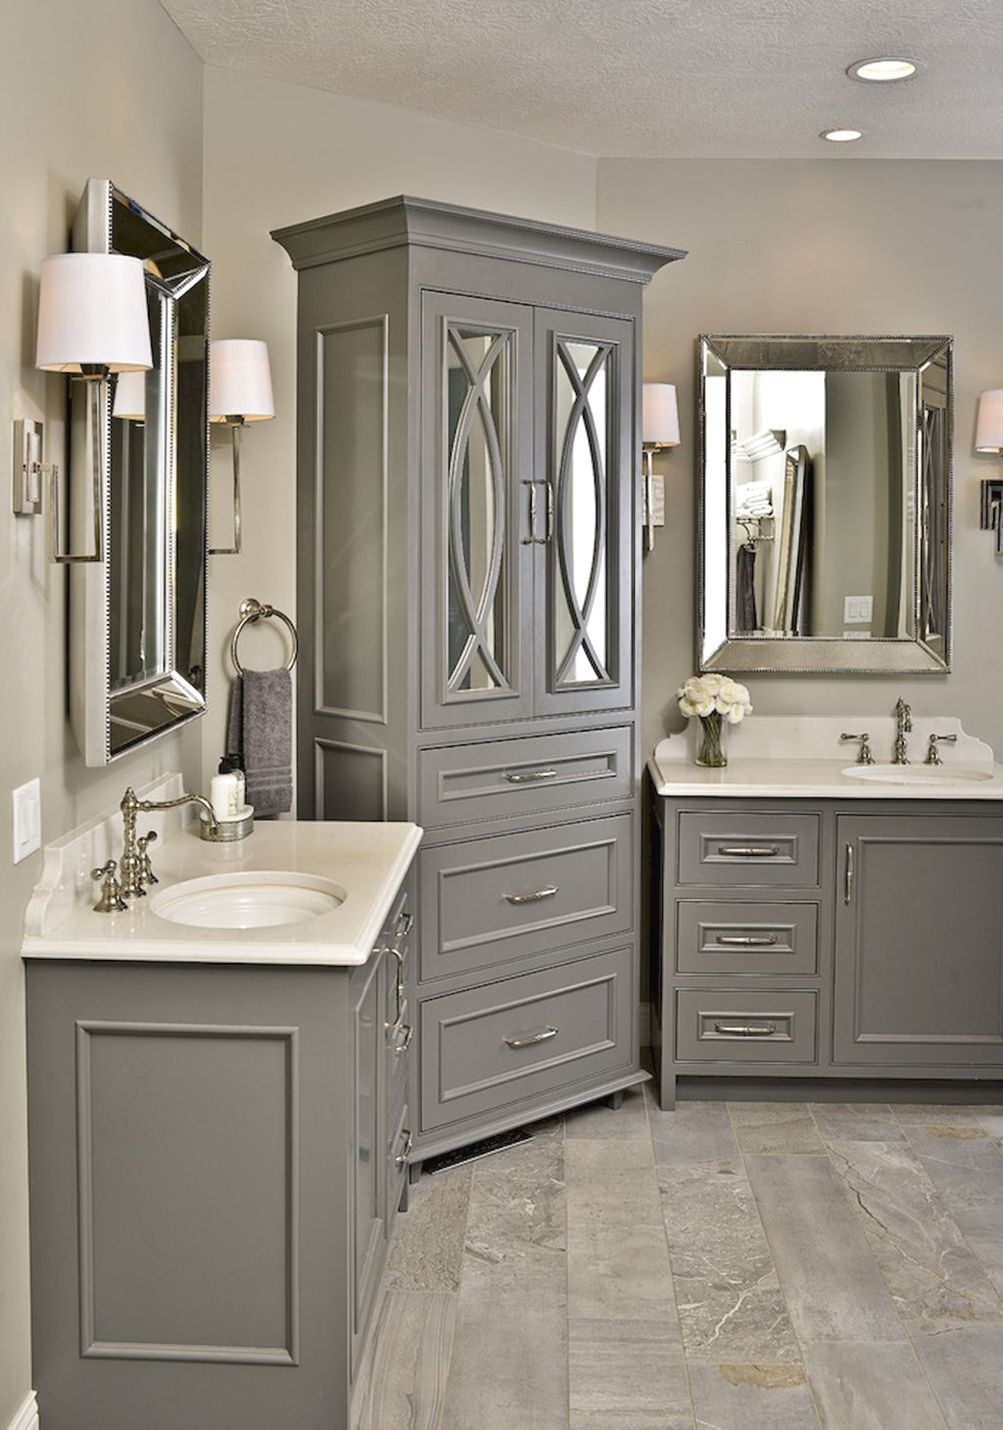 12 All Time Best Cheap Bathroom Remodeling Ideas Small Master